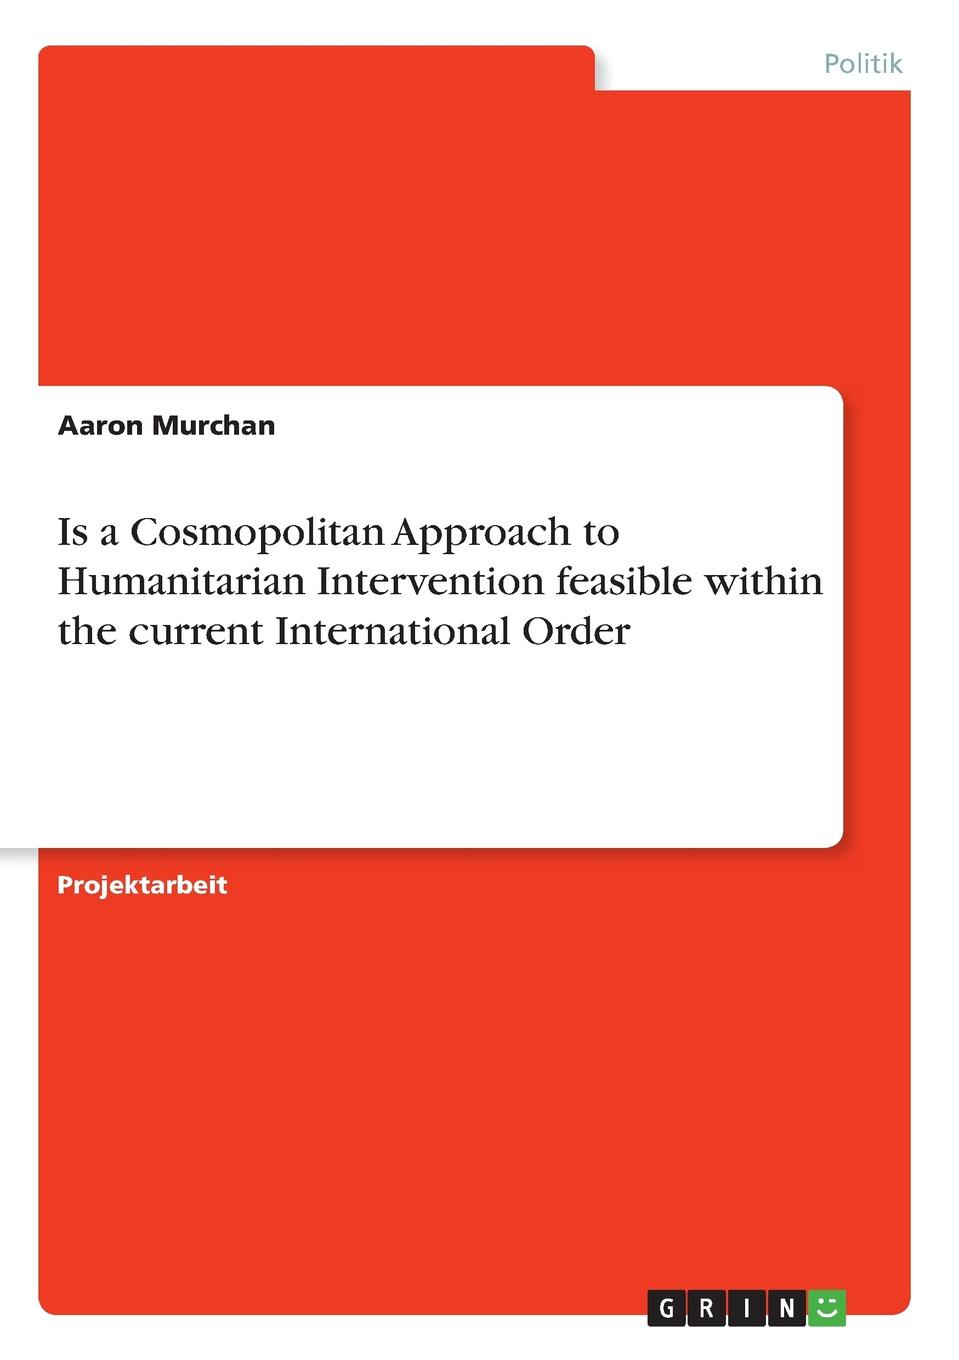 Aaron Murchan Is a Cosmopolitan Approach to Humanitarian Intervention feasible within the current International Order